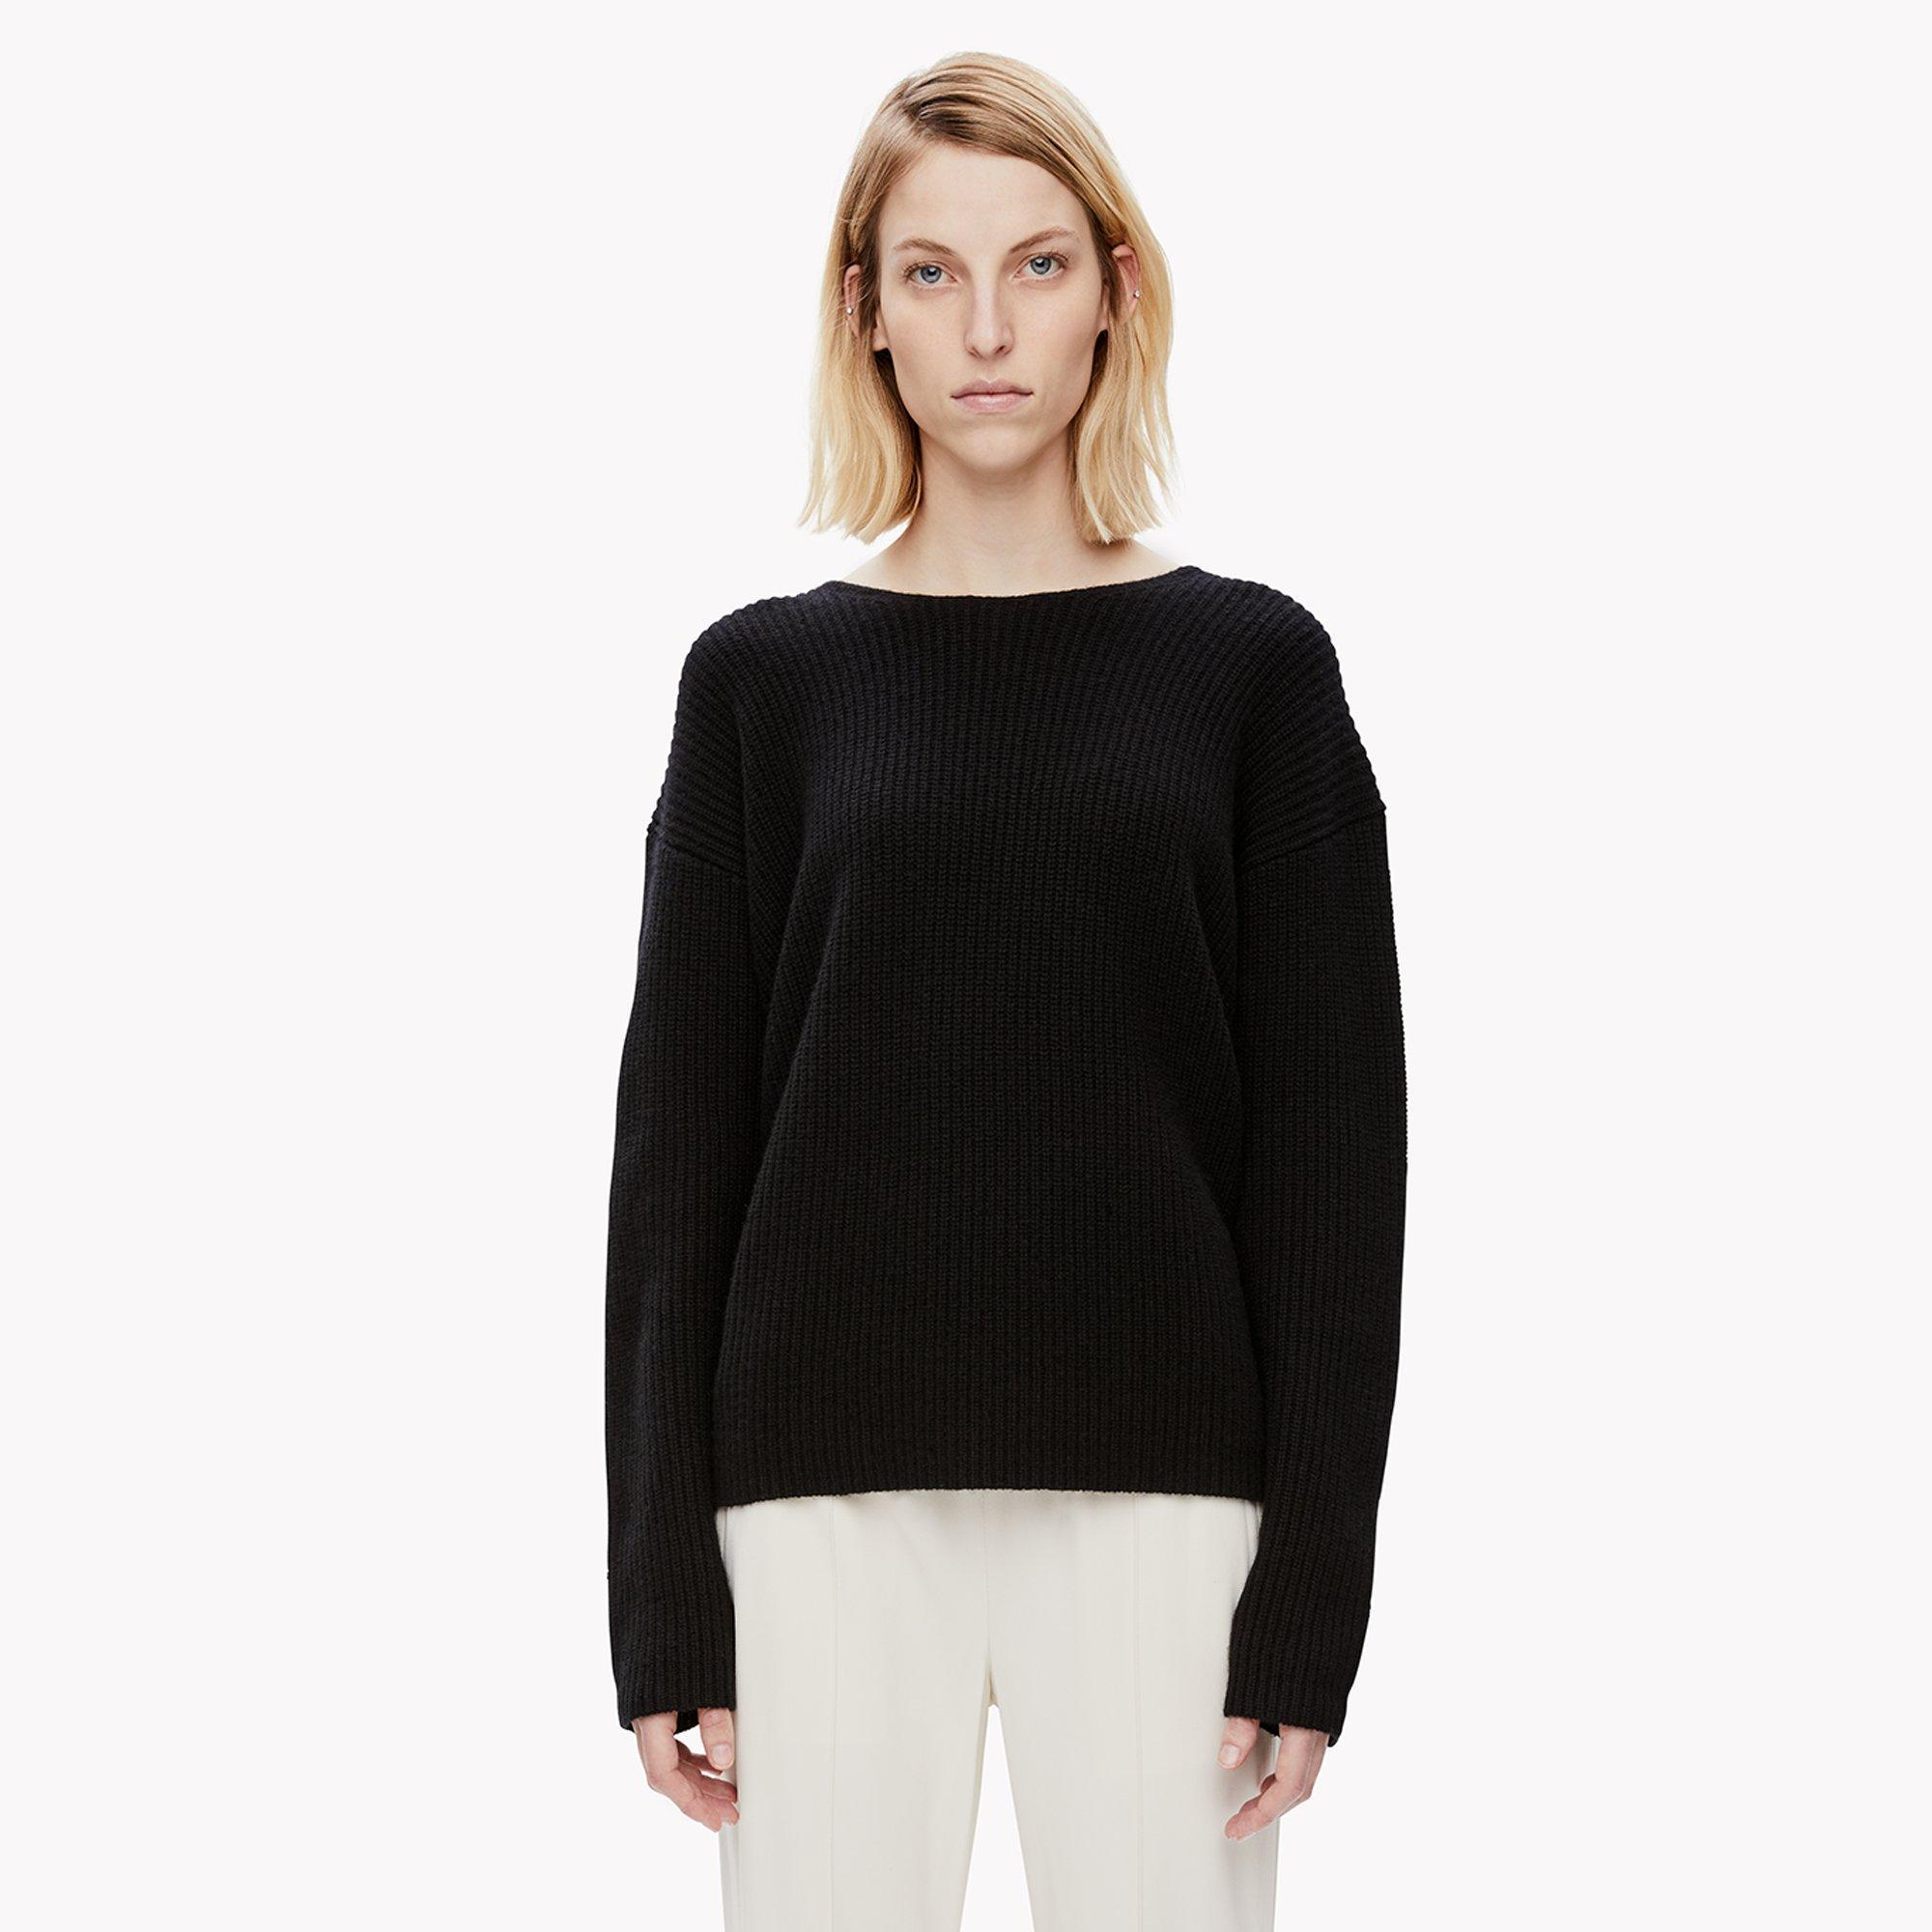 Lyst - Theory Cashmere Twist-back Sweater in Black fc8ad53bc